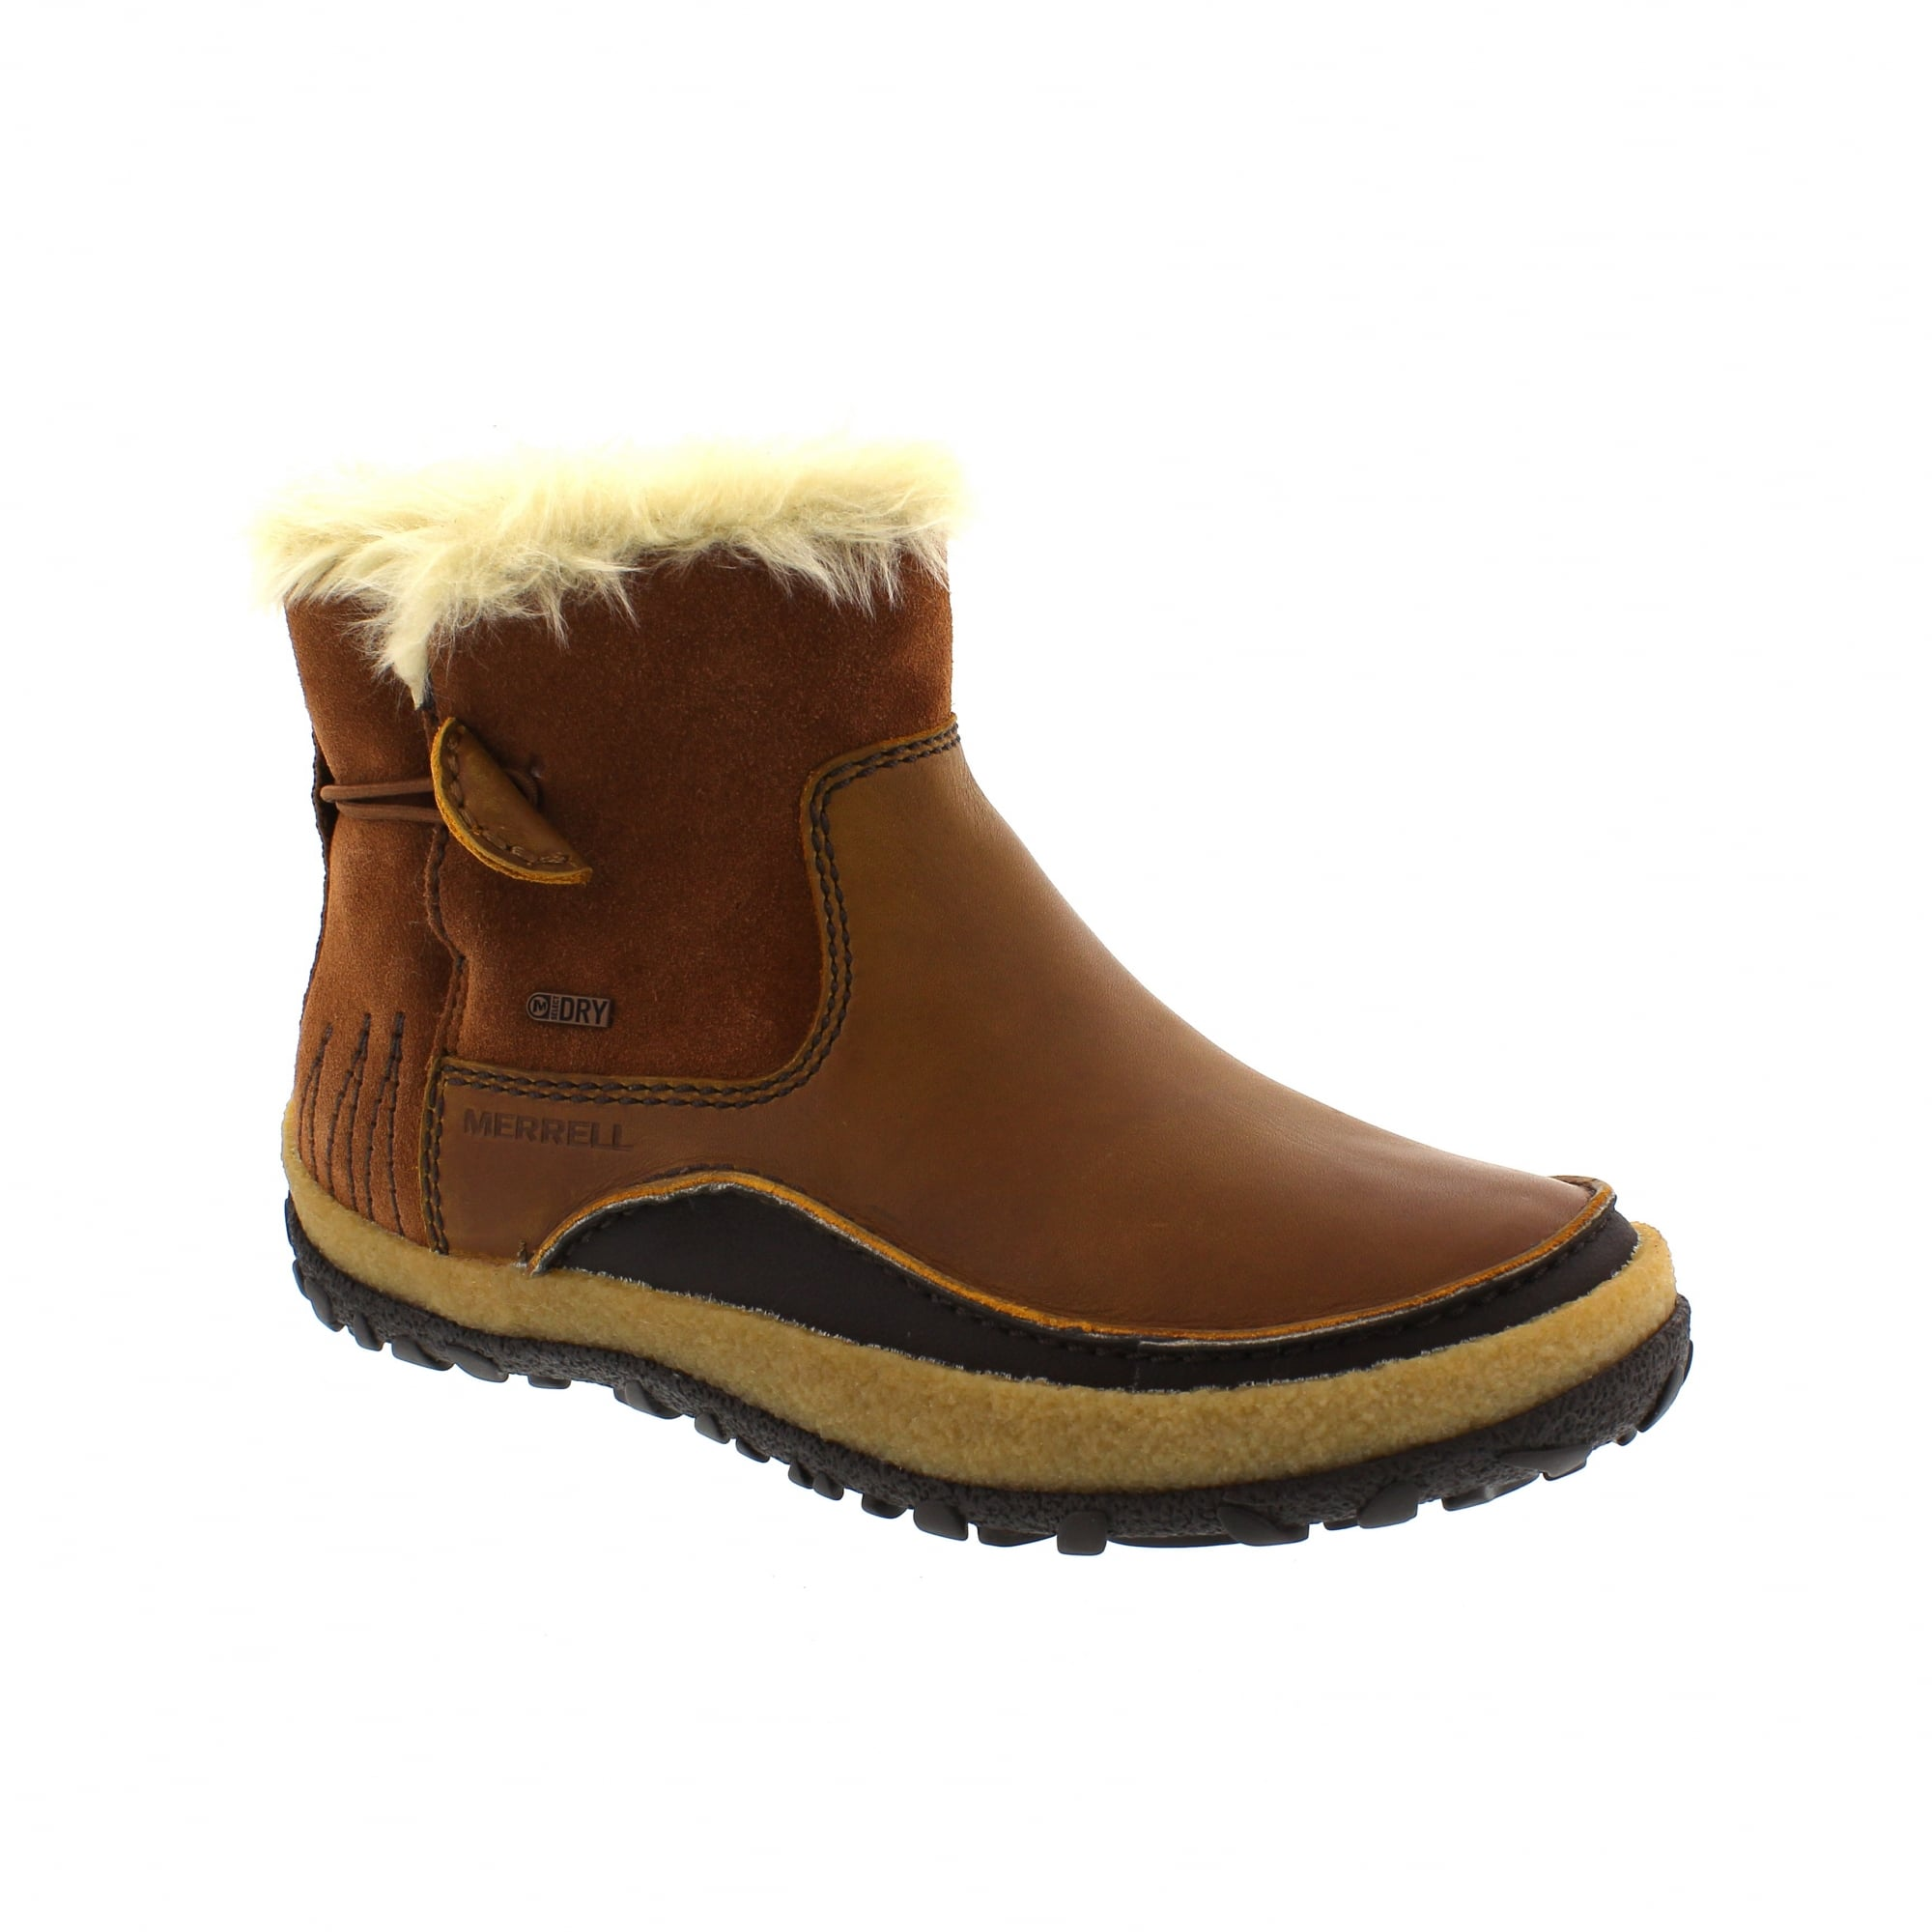 7944262a79be Merrell Tremblant Pull On Polar Wtpf J45932 Womens Ankle Boots